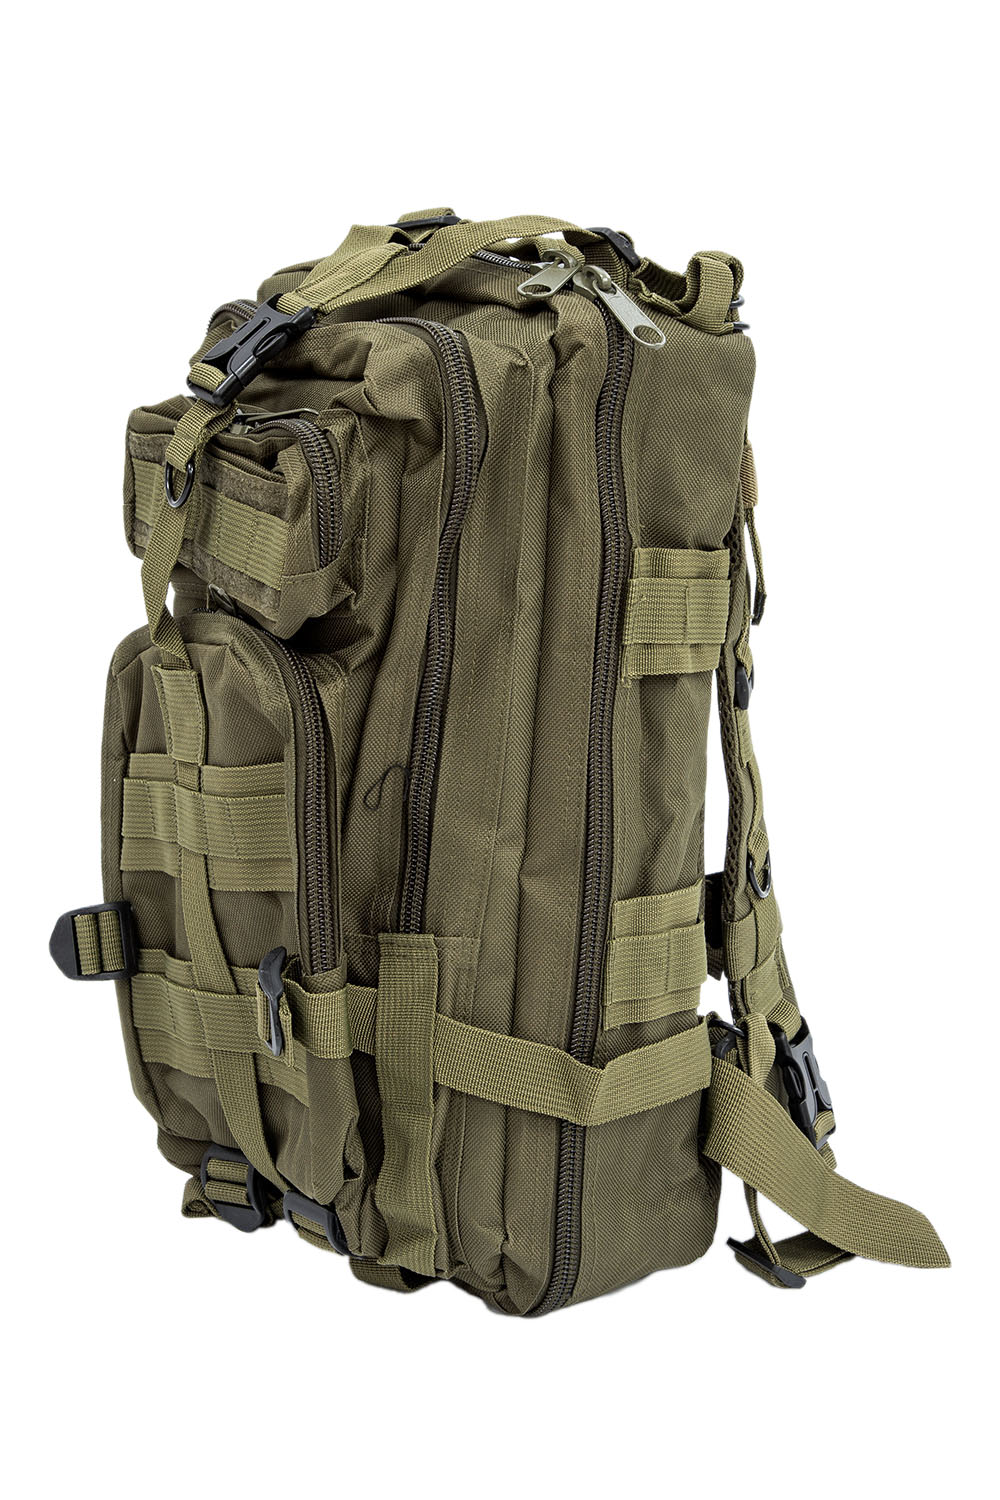 Men Outdoor backpack - Men Outdoor backpack Military Tactical Backpack Camping Hiking Hu ...